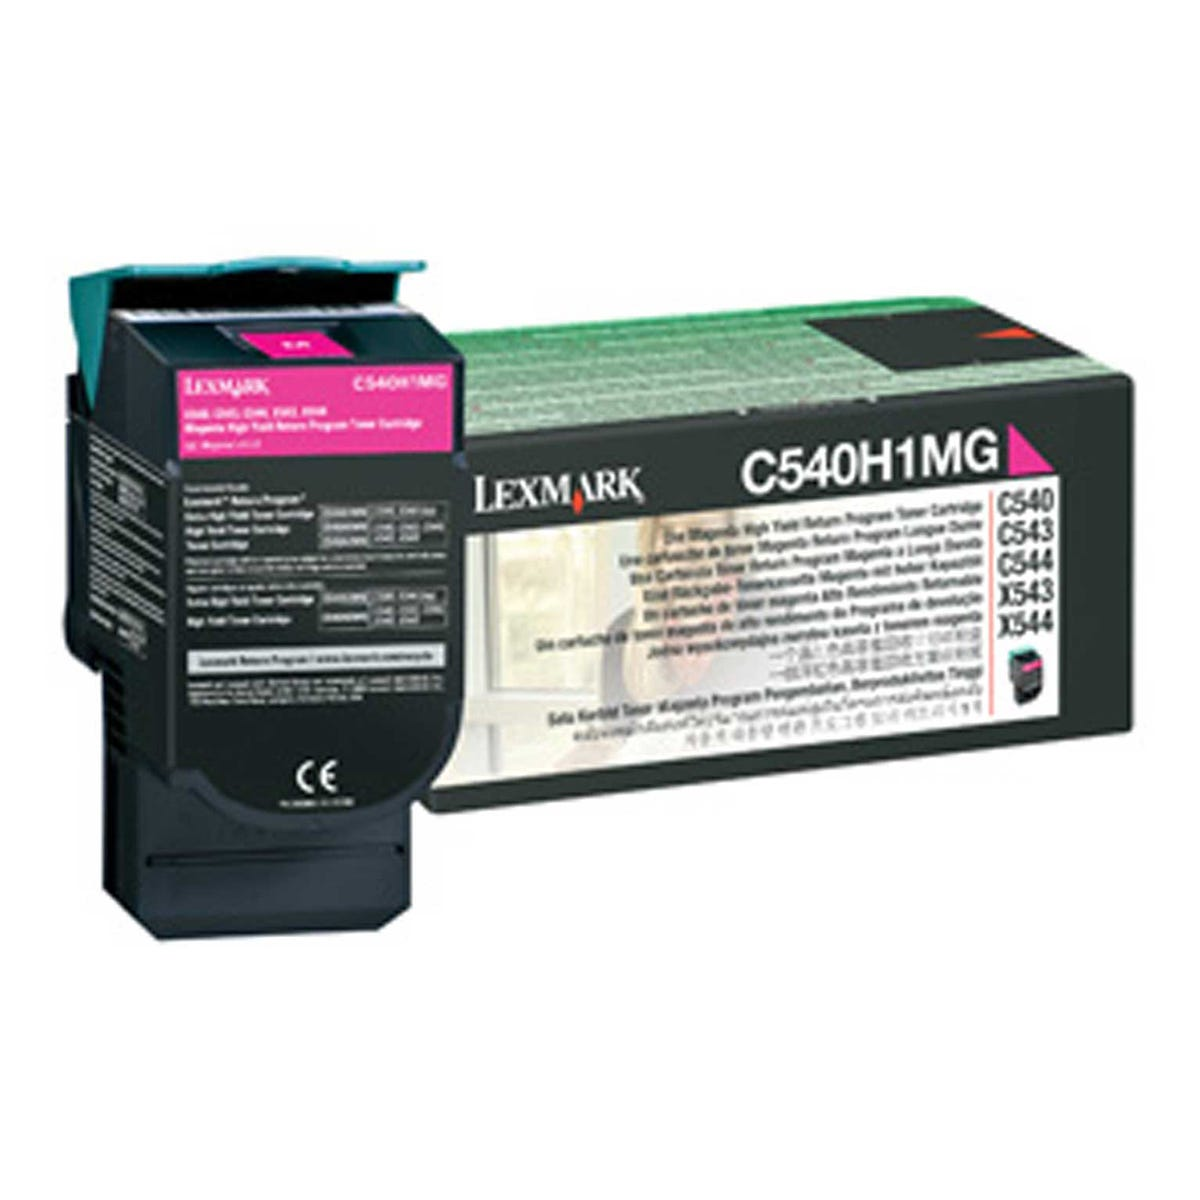 Image of Lexmark OC540H1MG High Yield Printer Ink Toner Cartridge C54X/X54X, Magenta